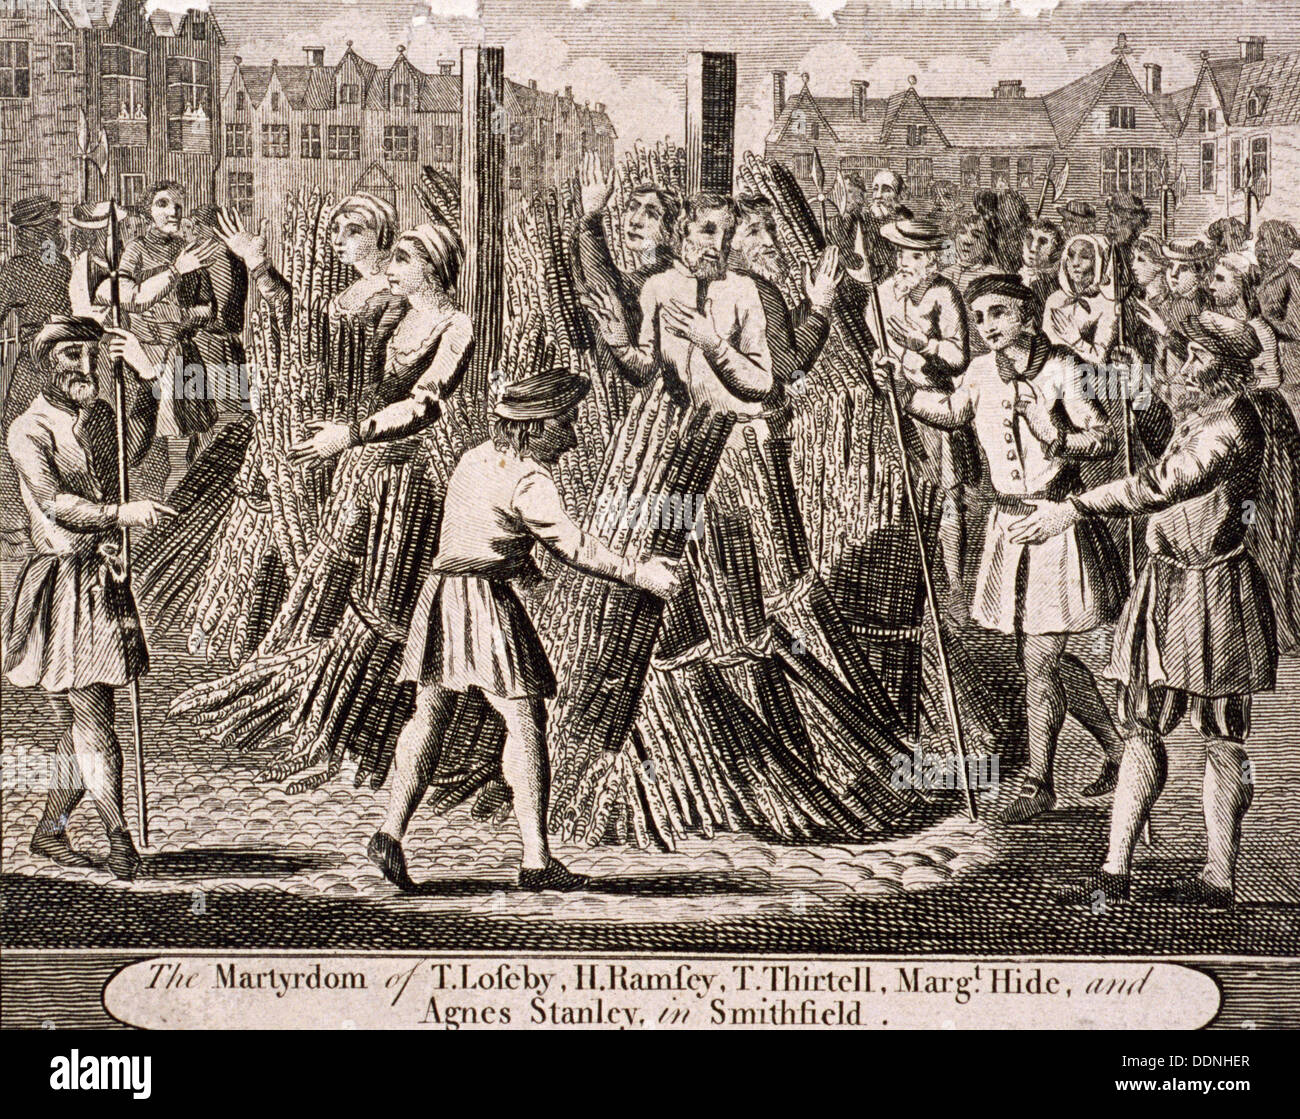 Execution of protestants at Smithfield, 1557, (c1720). Artist: Anon